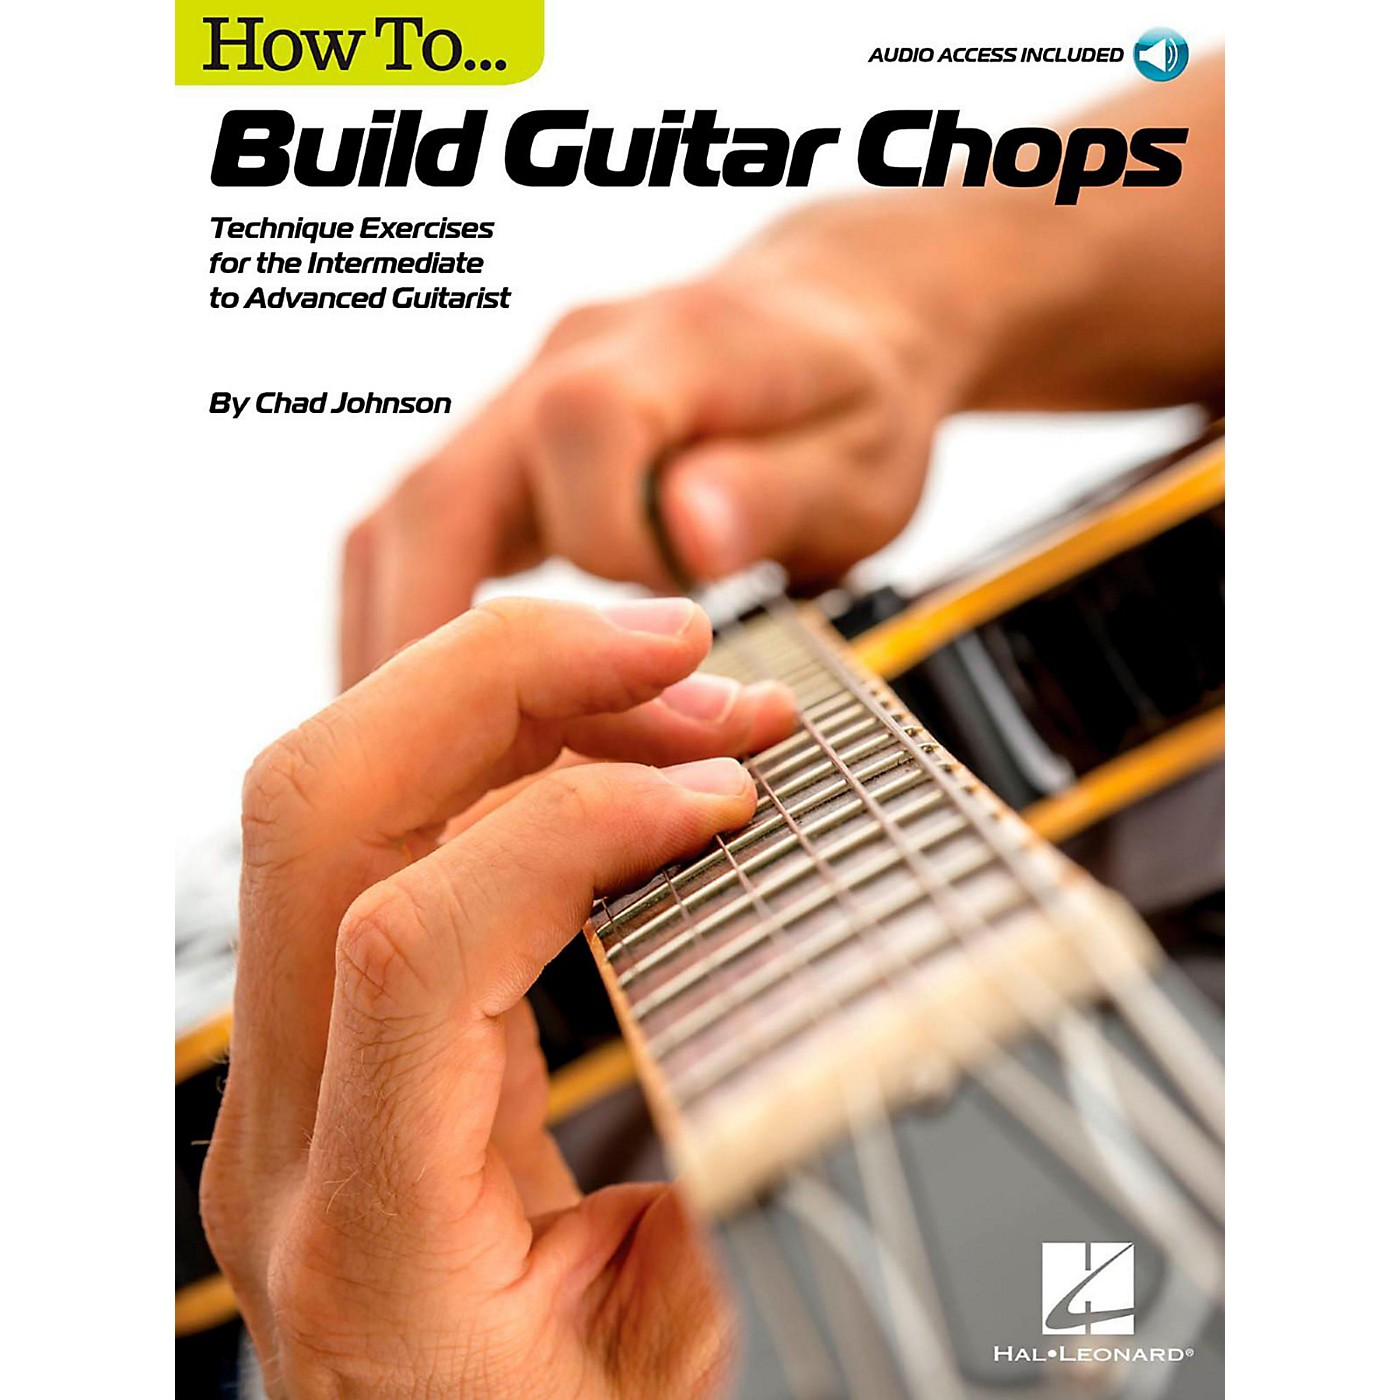 Hal Leonard How to Build Guitar Chops - Technique Exercises for the Intermediate to Advanced Guitarist Book/Audio Online thumbnail